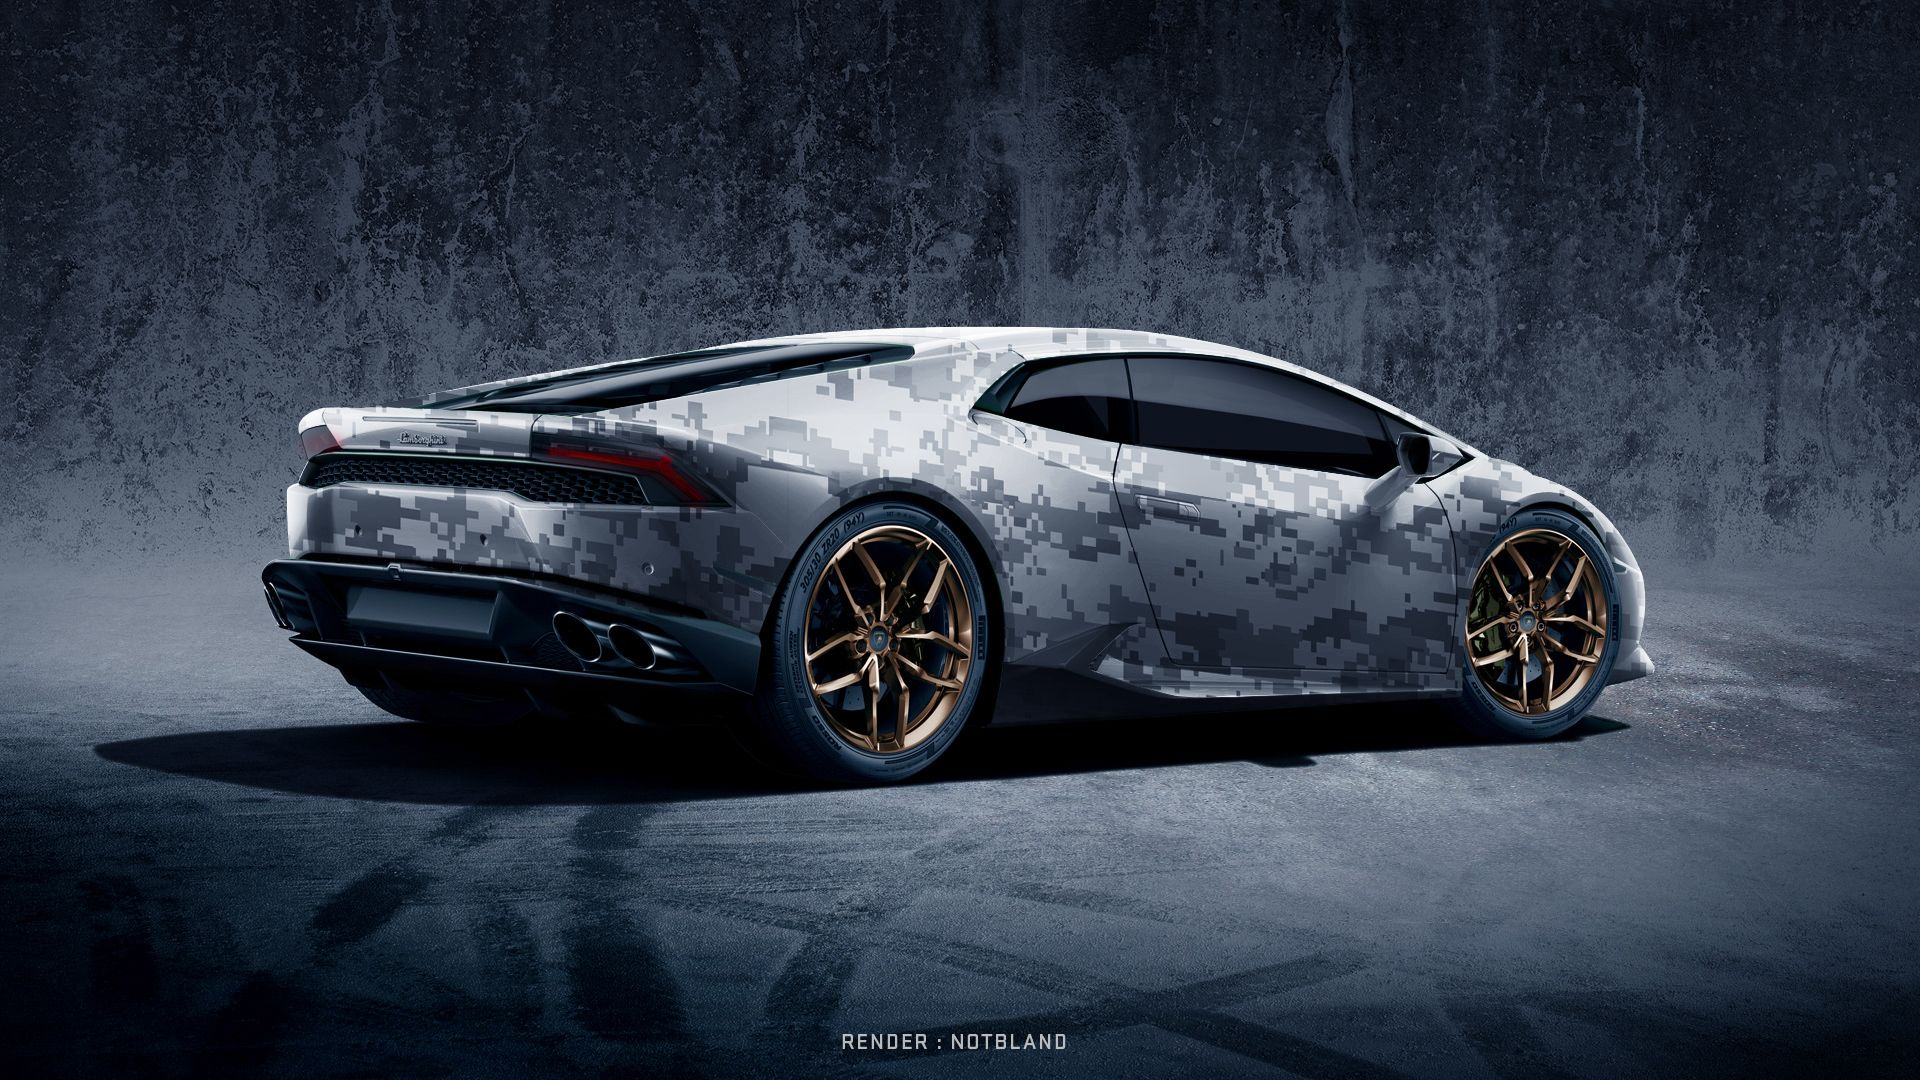 hd wallpaper meet the new lamborghini huracan - Lamborghini Huracan Wallpaper